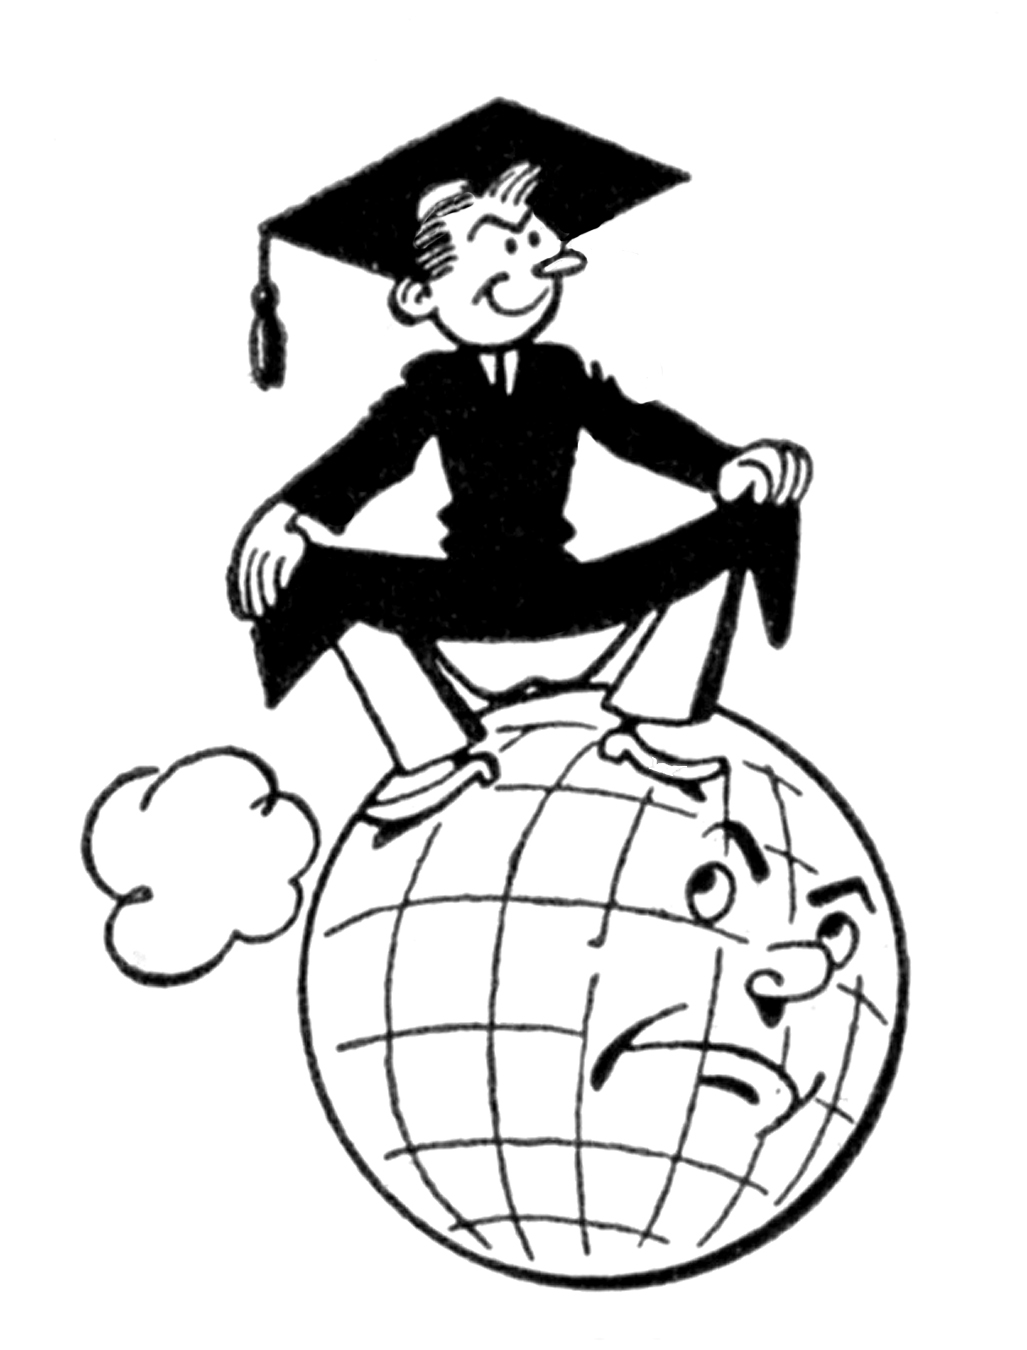 hight resolution of preschool graduation graphics clipart library free clipart images